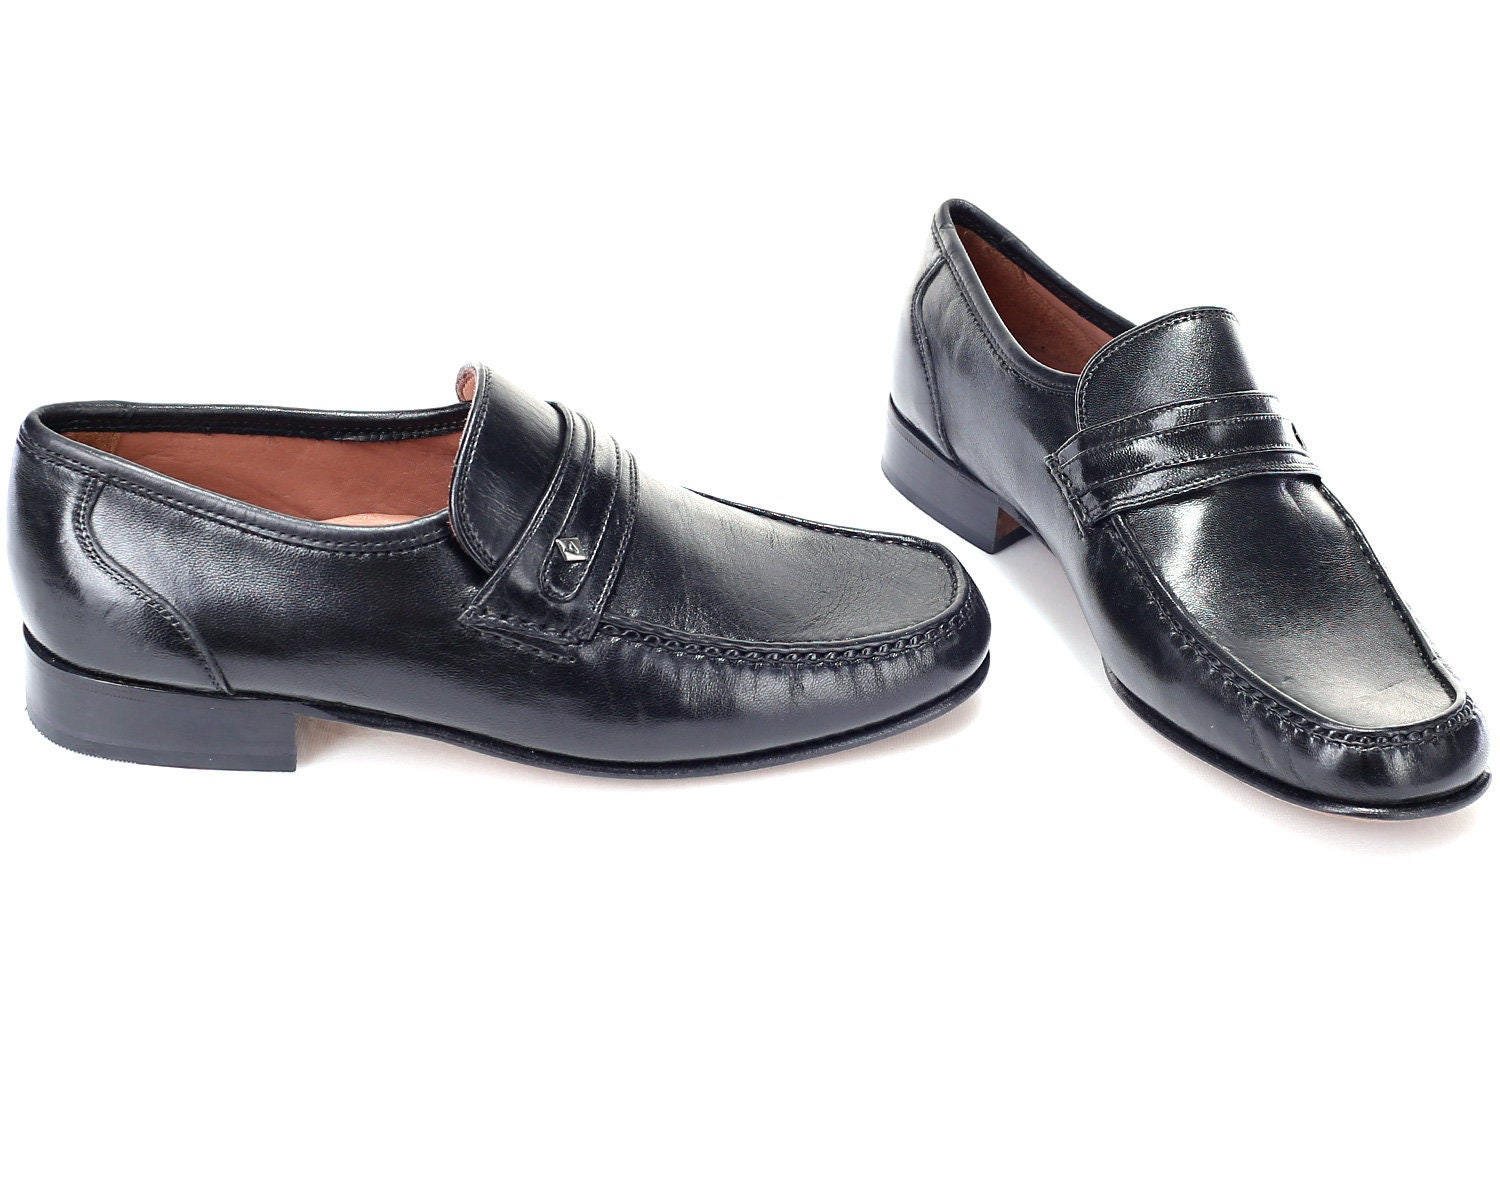 cf9bd1ddc302a Luxury Black Loafers Men 80s Mens Slip On Flats Leather Shoes Leather Soles  Classic Wedding High Quality Us men 8.5 , Eur 42, UK 8